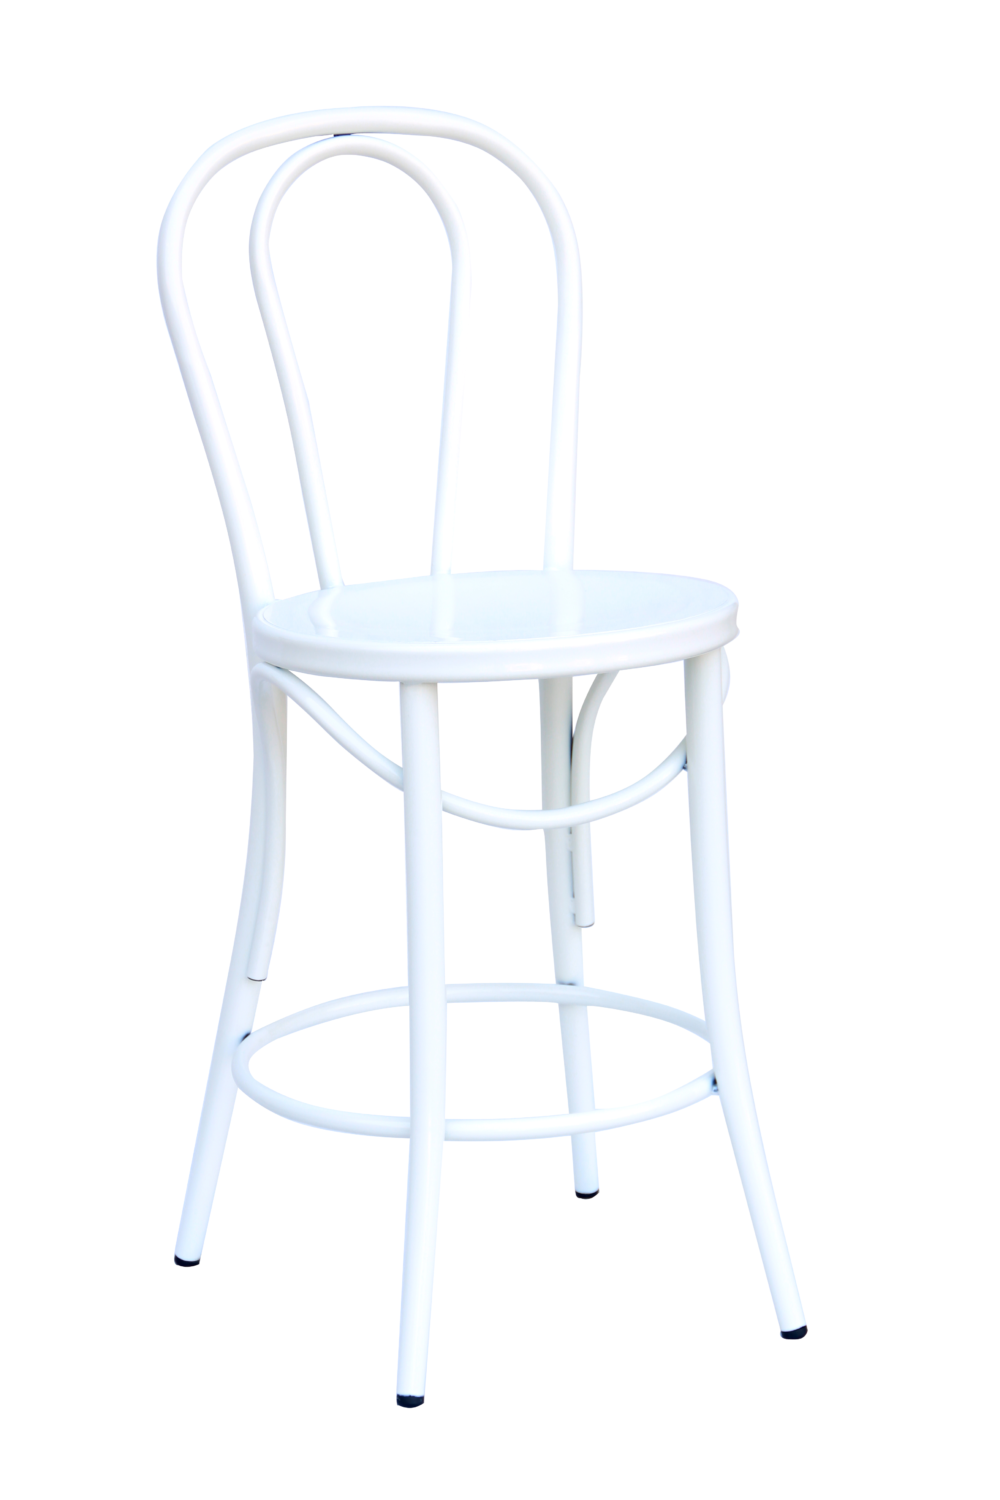 Bistro 24″ Counter Stool: White (2411702)